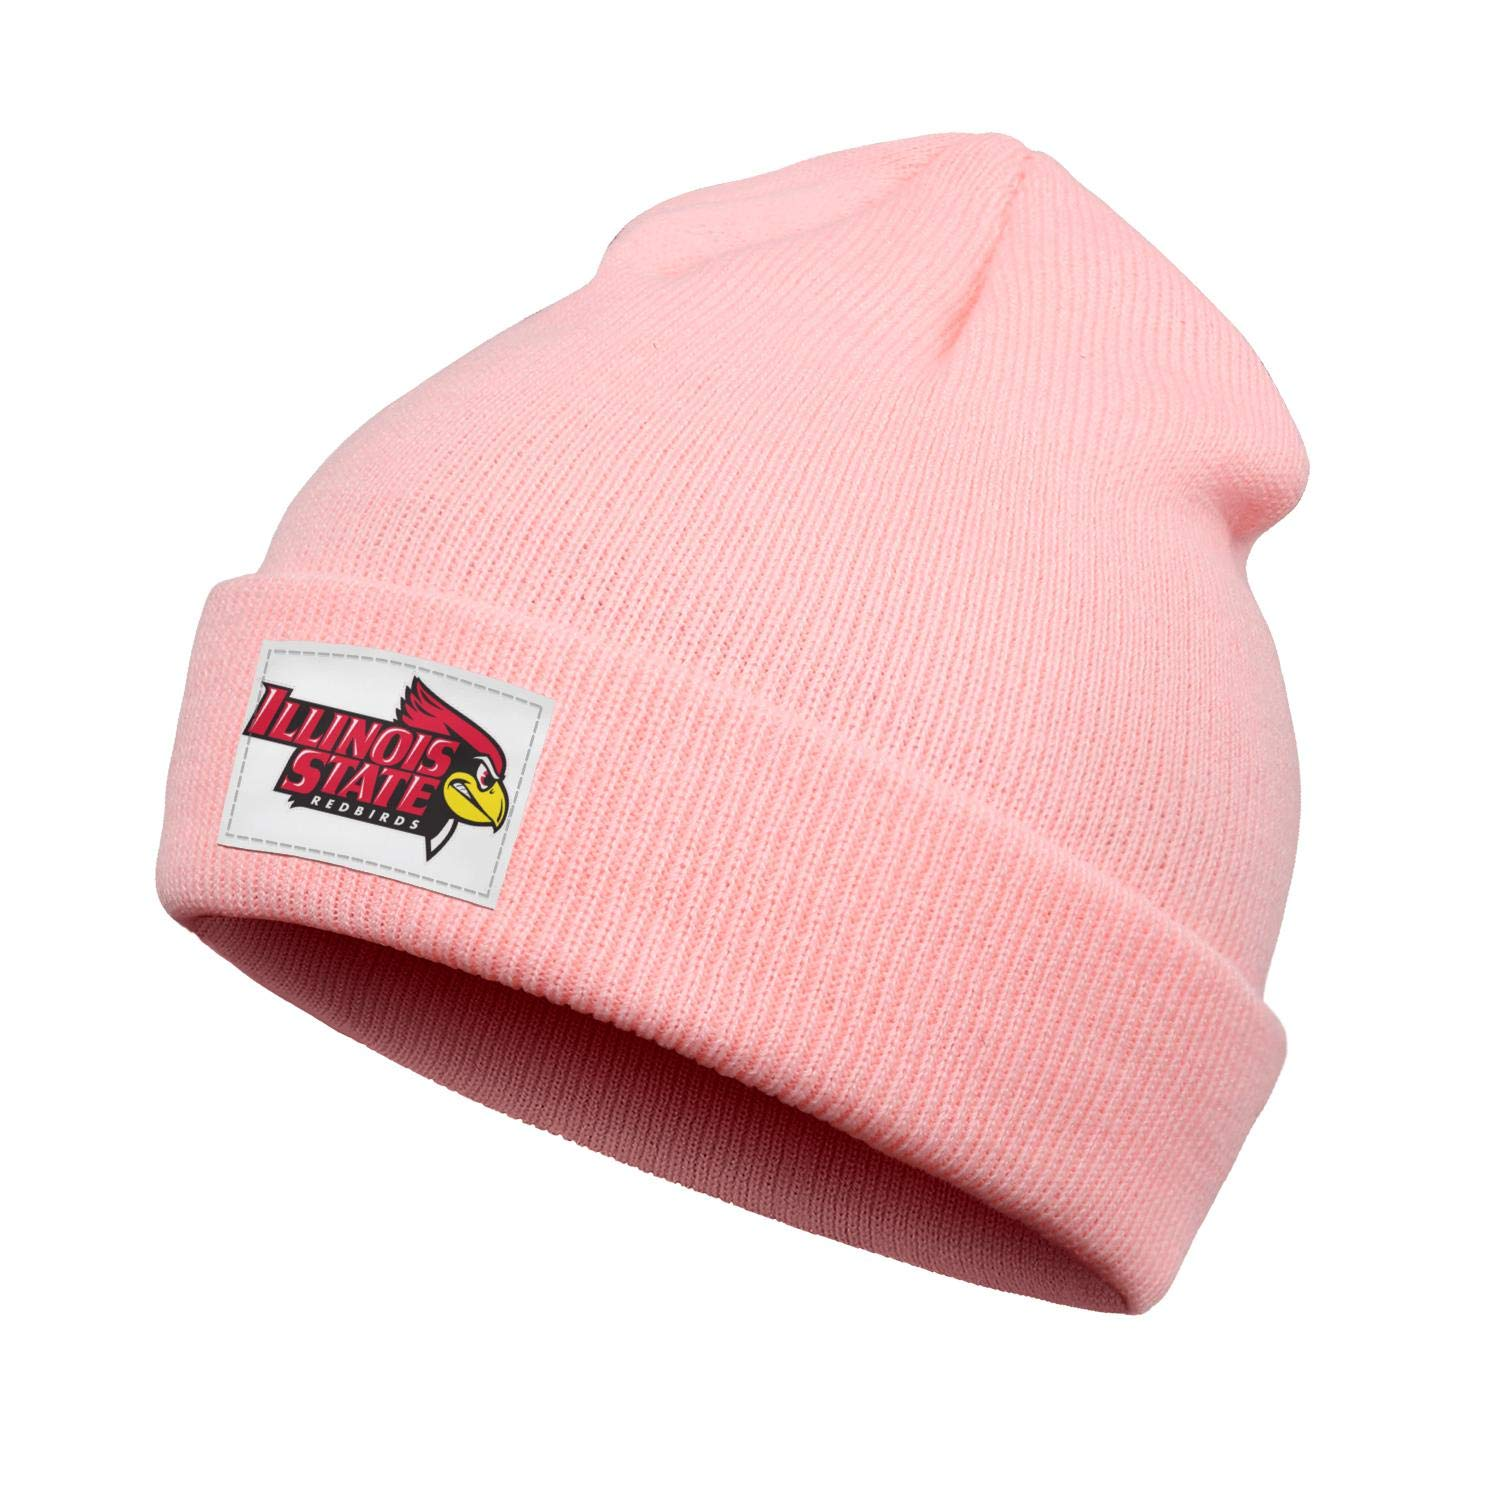 LMQI Kids Winter Knit Cap Cute Flat Brim Illinois-State-Redbirds-Baseball-Logo Style Pink Beanie Hat for Boys Girls